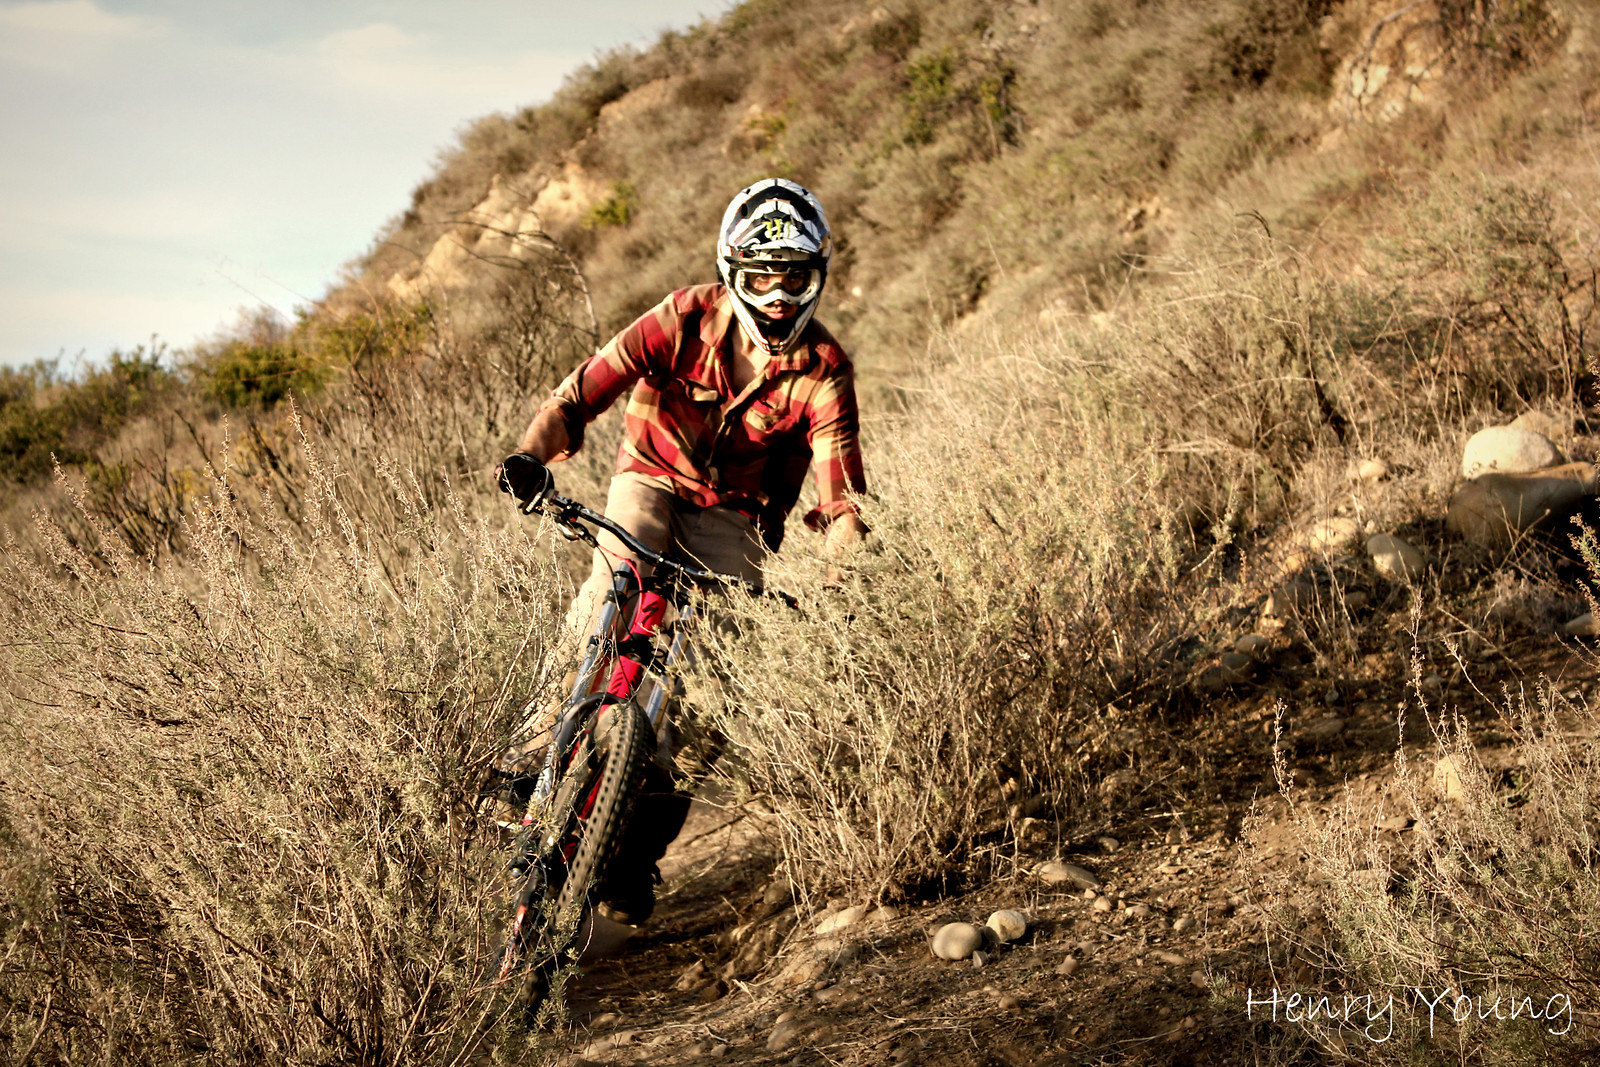 12-31-11 098 edit - Henry_Young - Mountain Biking Pictures - Vital MTB